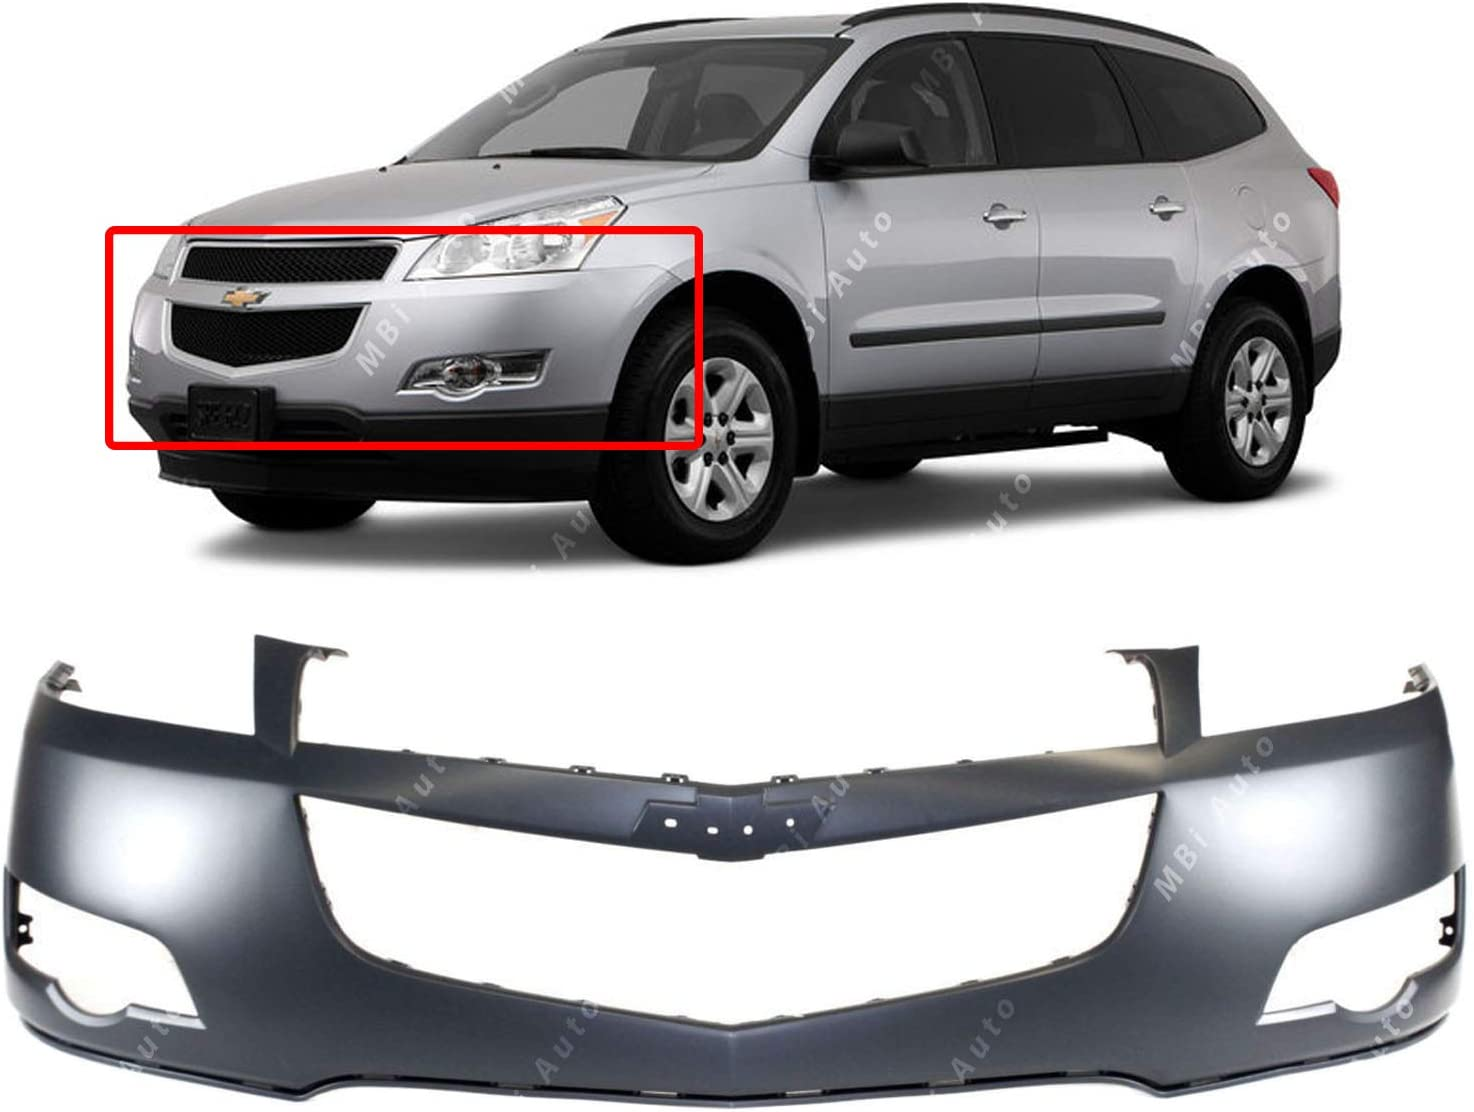 Primered BUMPERS THAT DELIVER GM1000897 Front Upper Bumper Cover Fascia for 2009-2012 Chevy Traverse 09-12